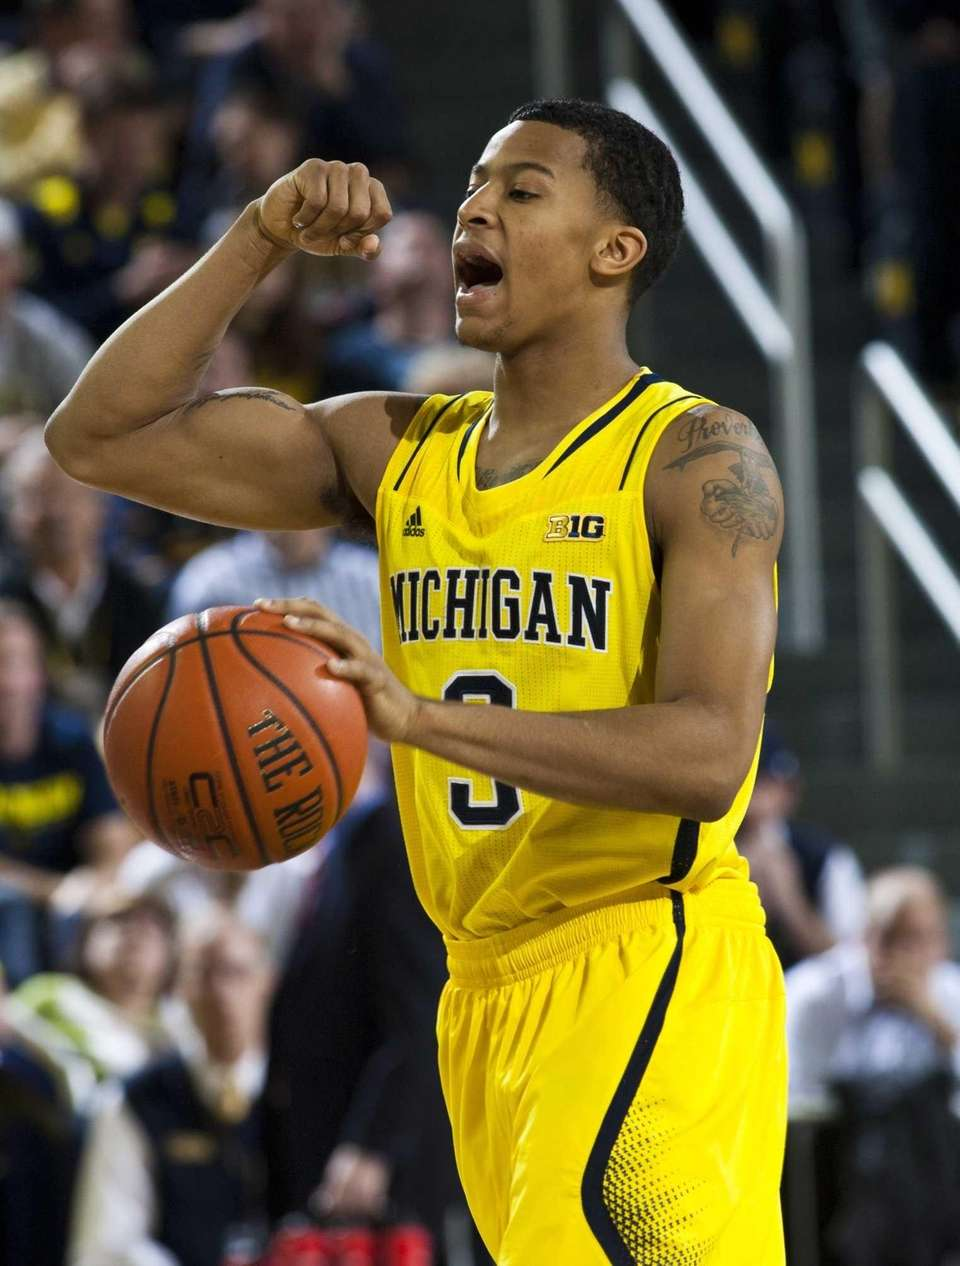 Michigan guard Trey Burke calls out a play